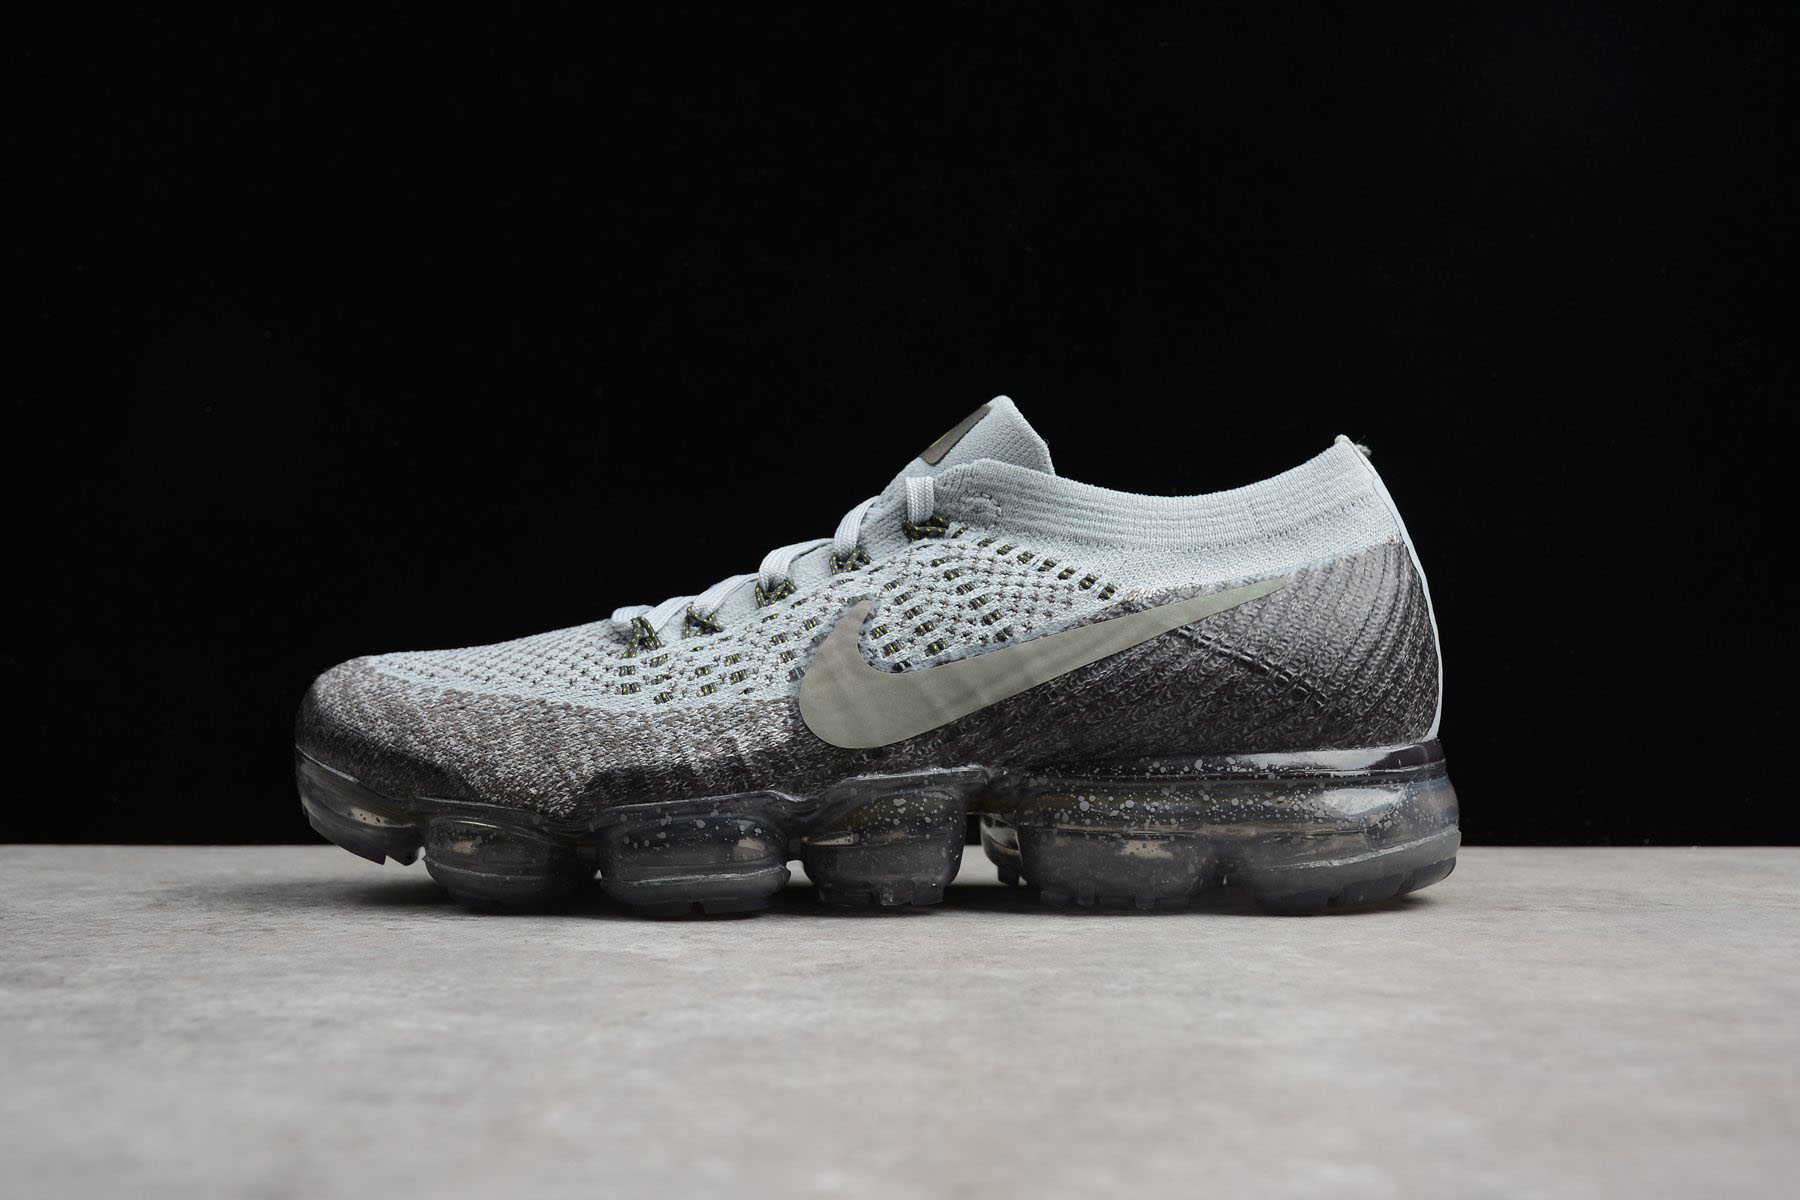 Nike Air Vapor Max 2018 Flyknit Black/Light Grey-Yellow 849558-012